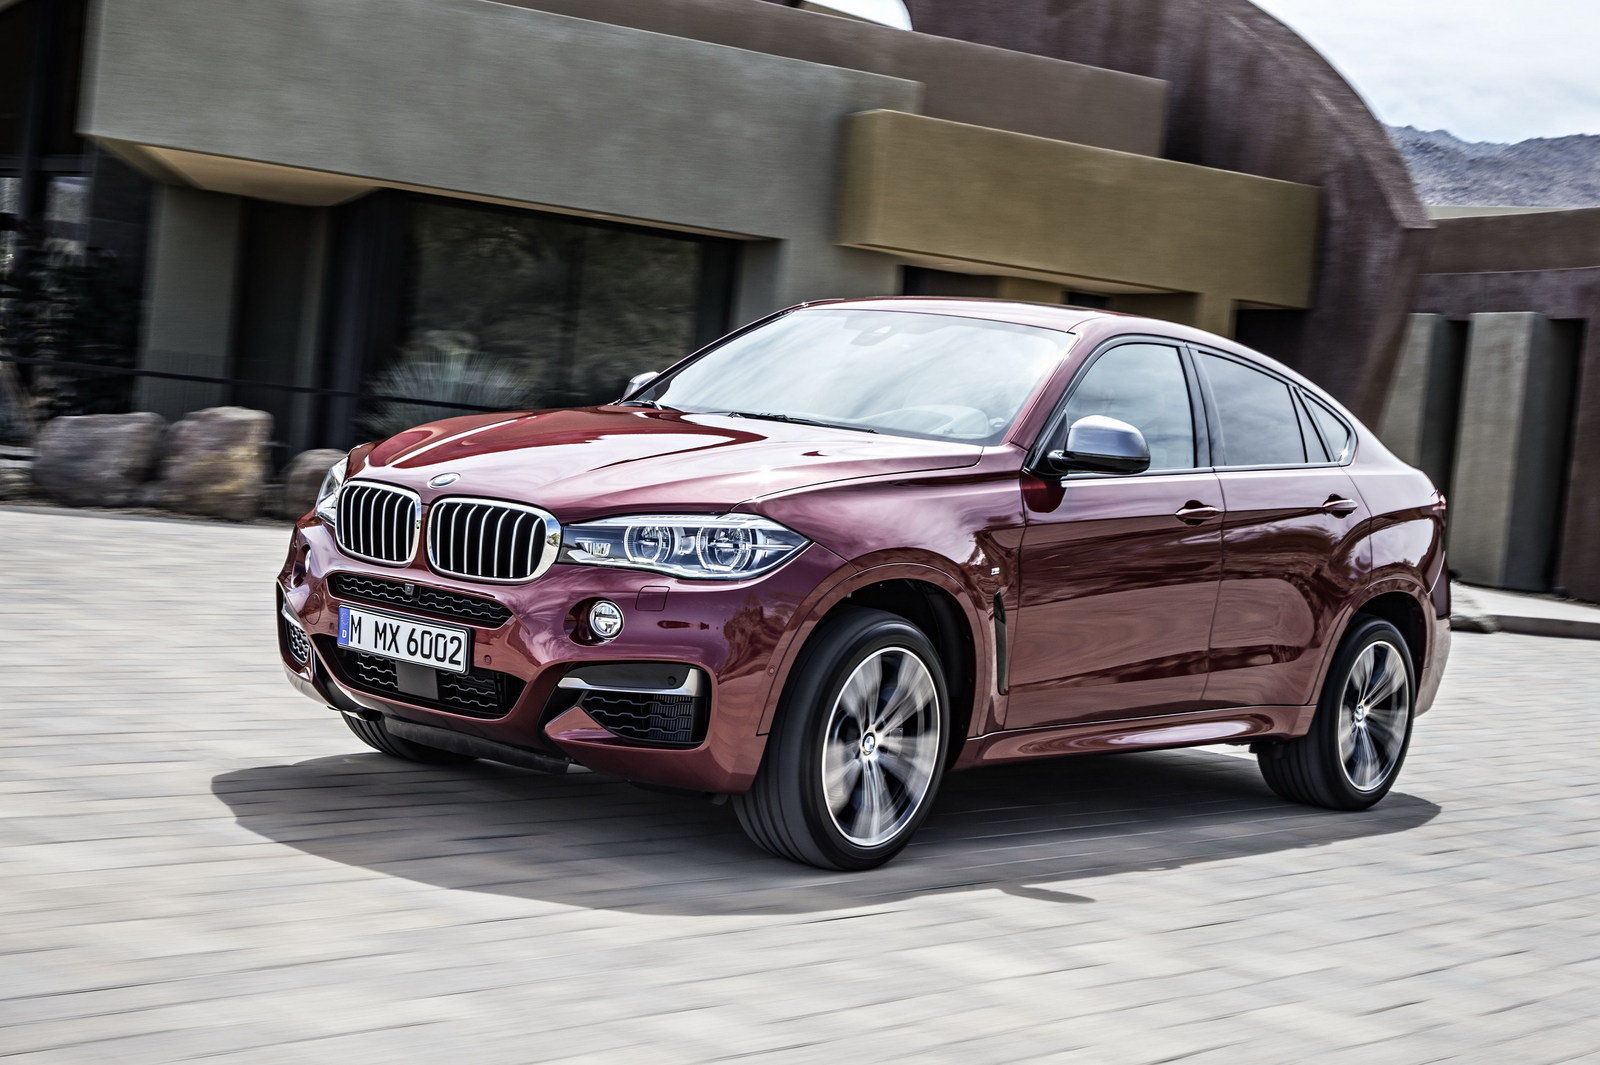 2015 bmw x6 m50d picture 555261 car review top speed. Black Bedroom Furniture Sets. Home Design Ideas